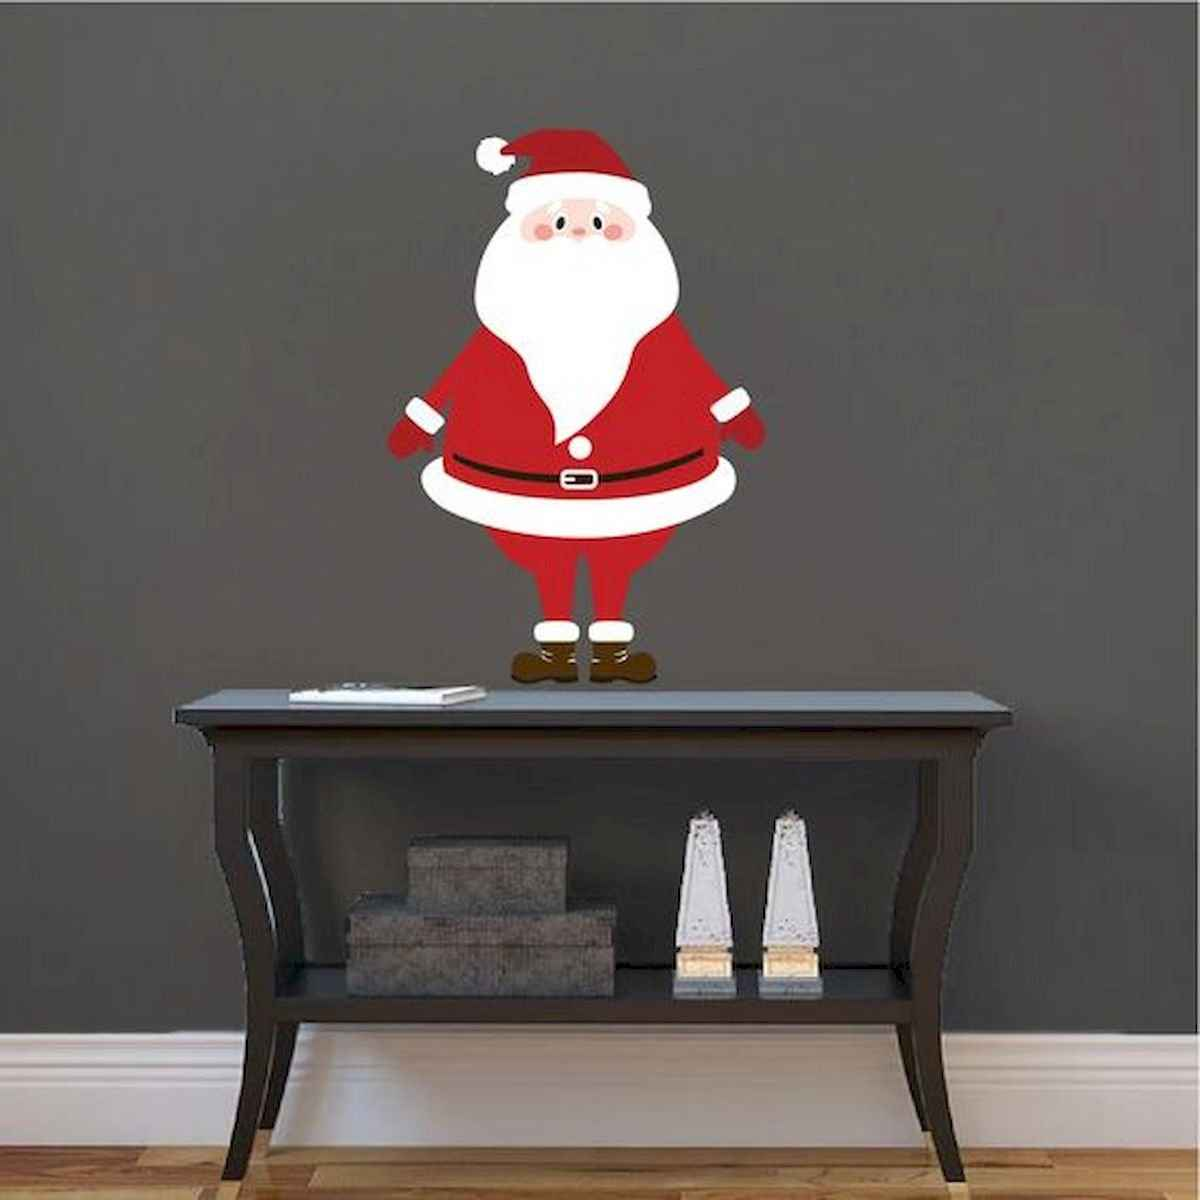 35 awesome apartment christmas decorations ideas (33)